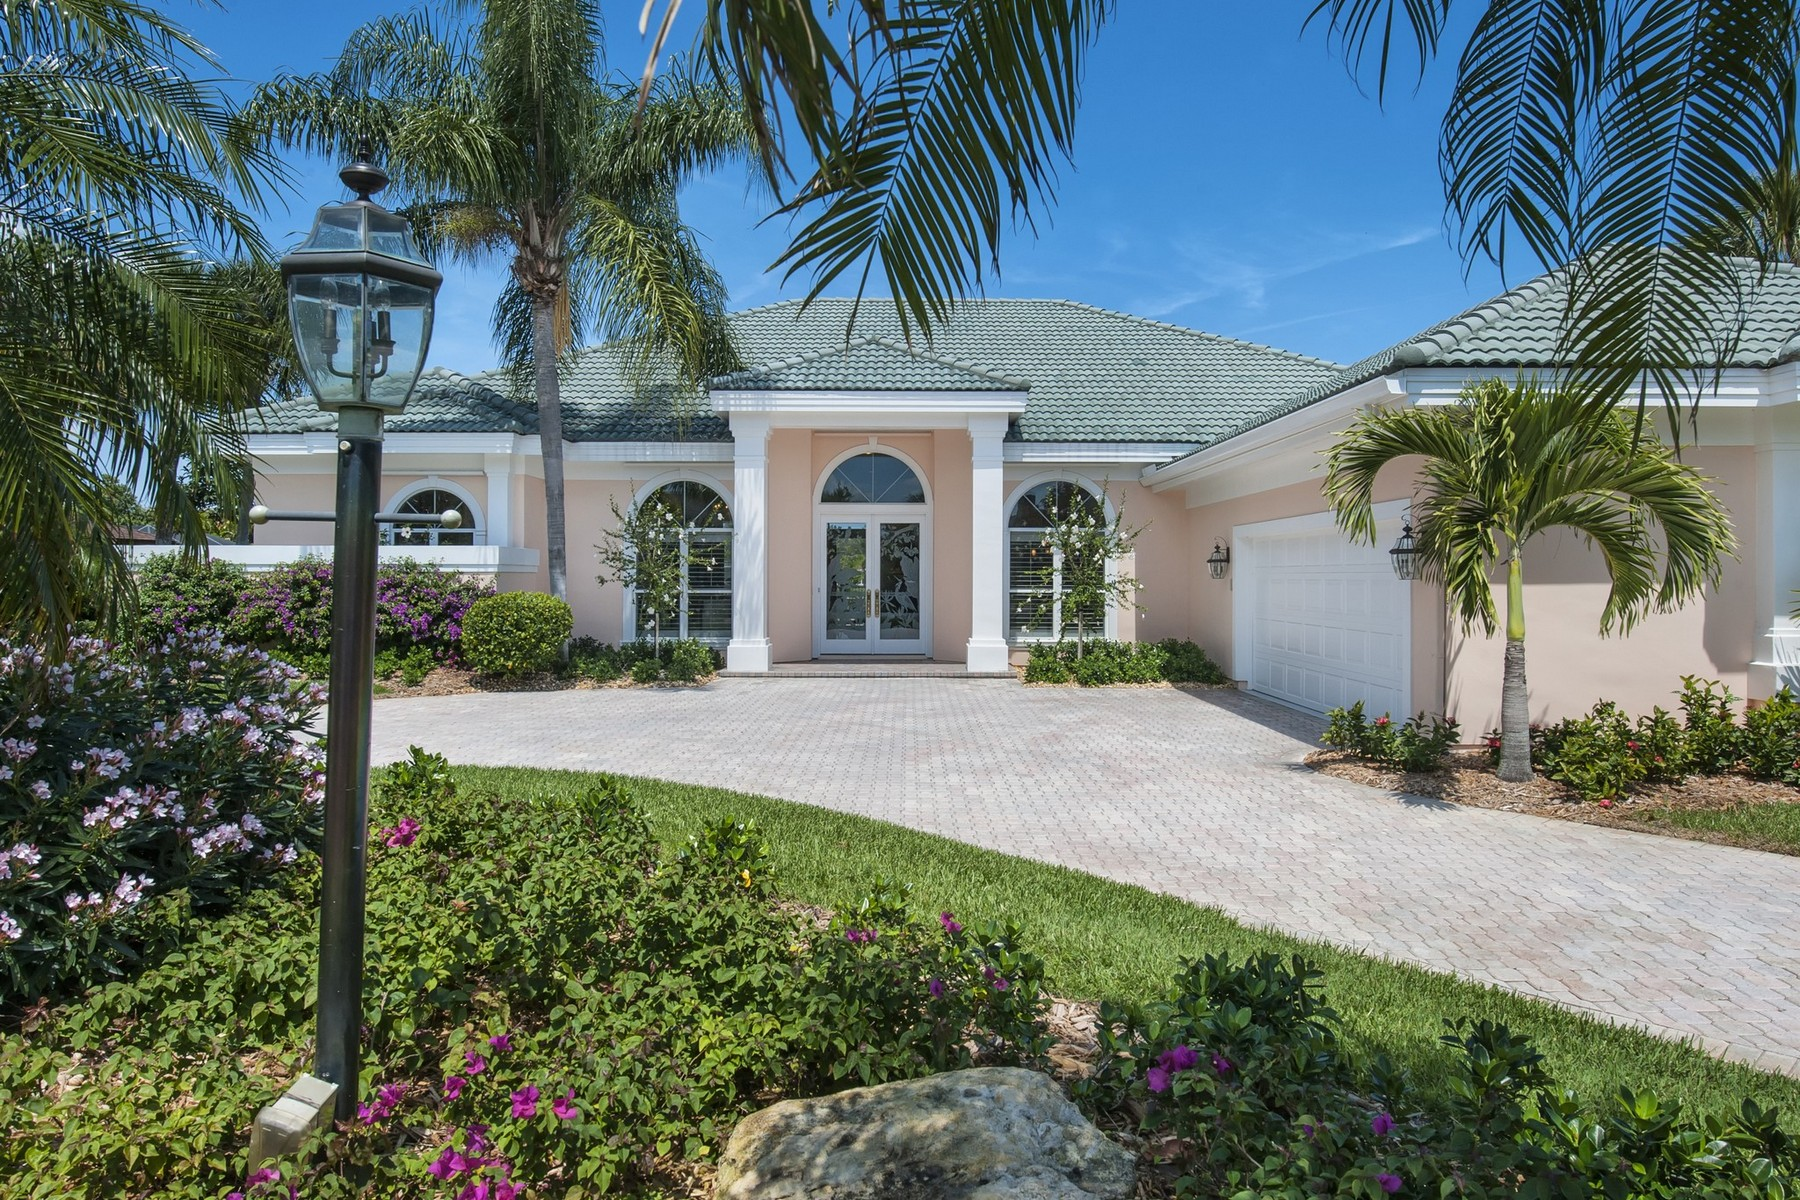 Single Family Home for Sale at Exquisite lakeview pool home in Cache Cay 64 Cache Cay Drive Vero Beach, Florida 32963 United States